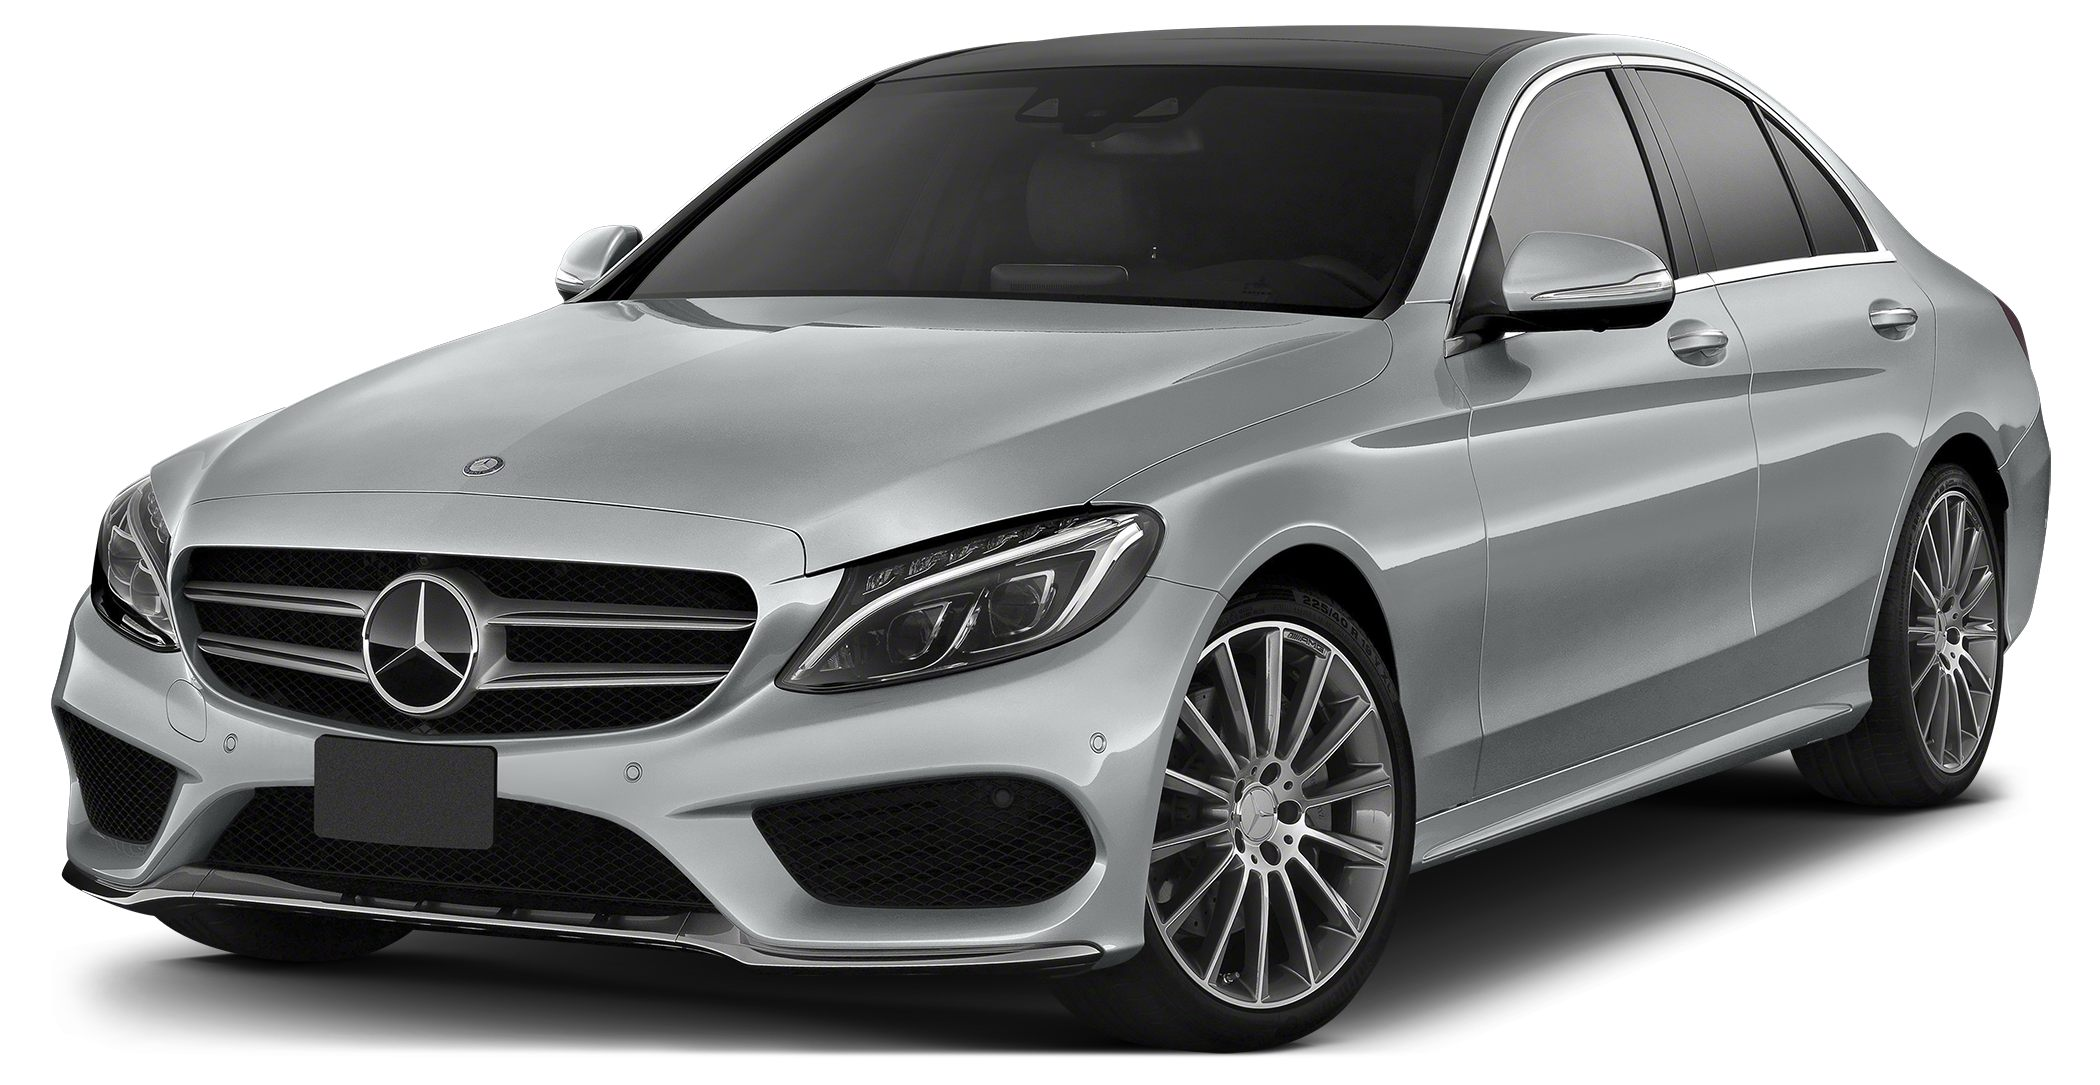 2015 MERCEDES C-Class C300 This 2015 C300 is a Carlton Motorcars demo now up for sale Only 3700